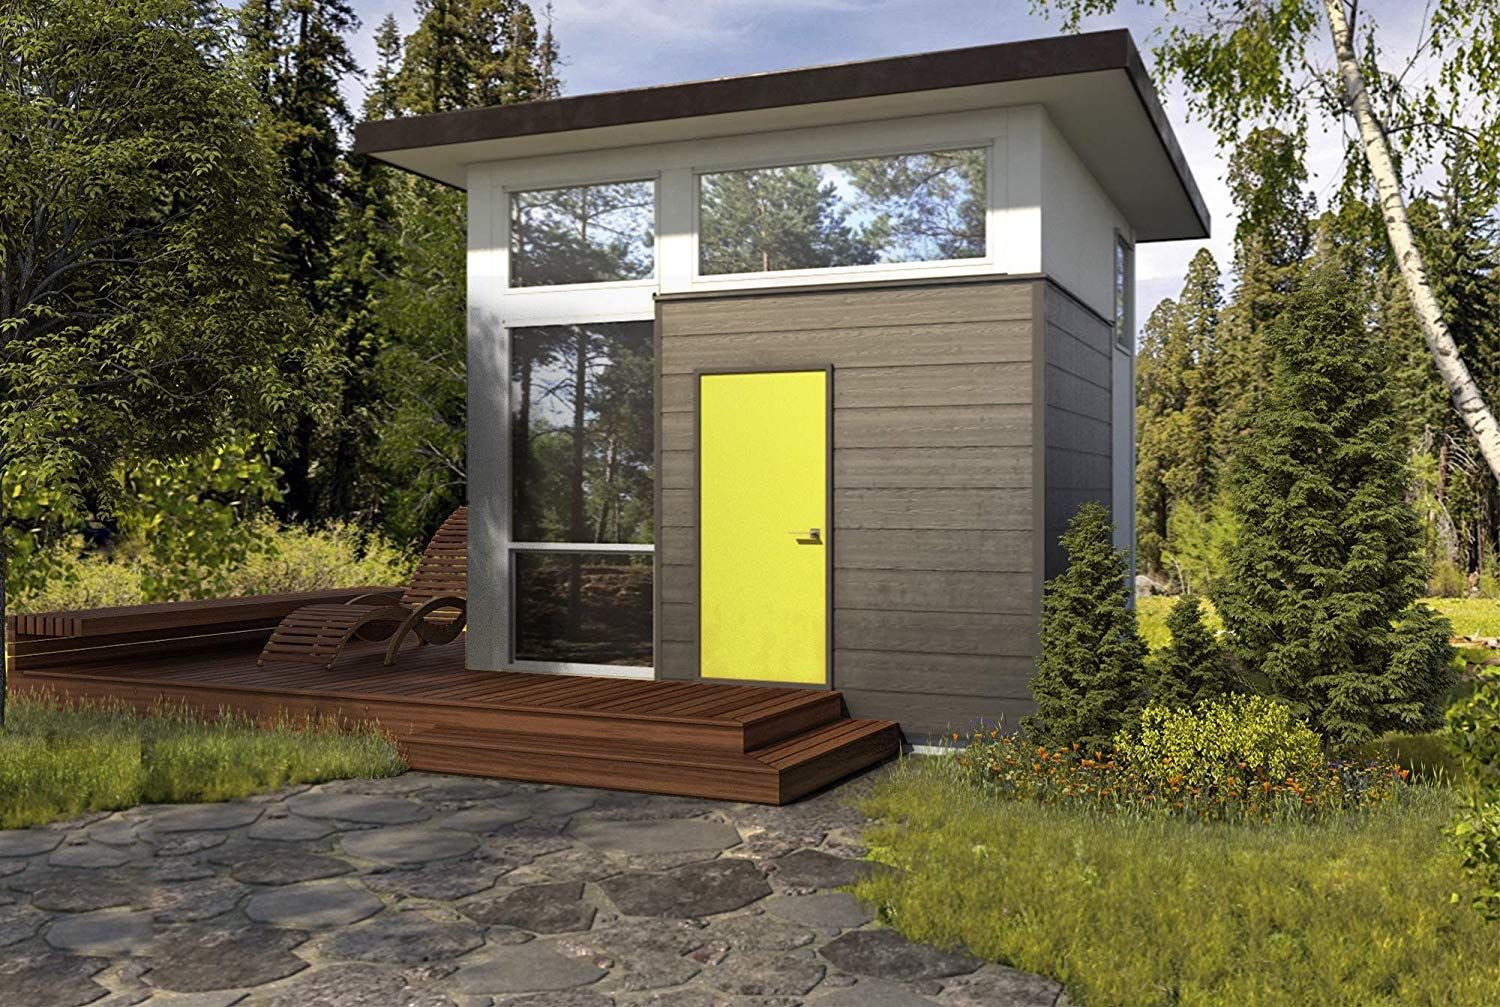 Amazon Is Now Selling A Tiny Home 'Cube' That's The Minimalist Getaway Of Your Dreams